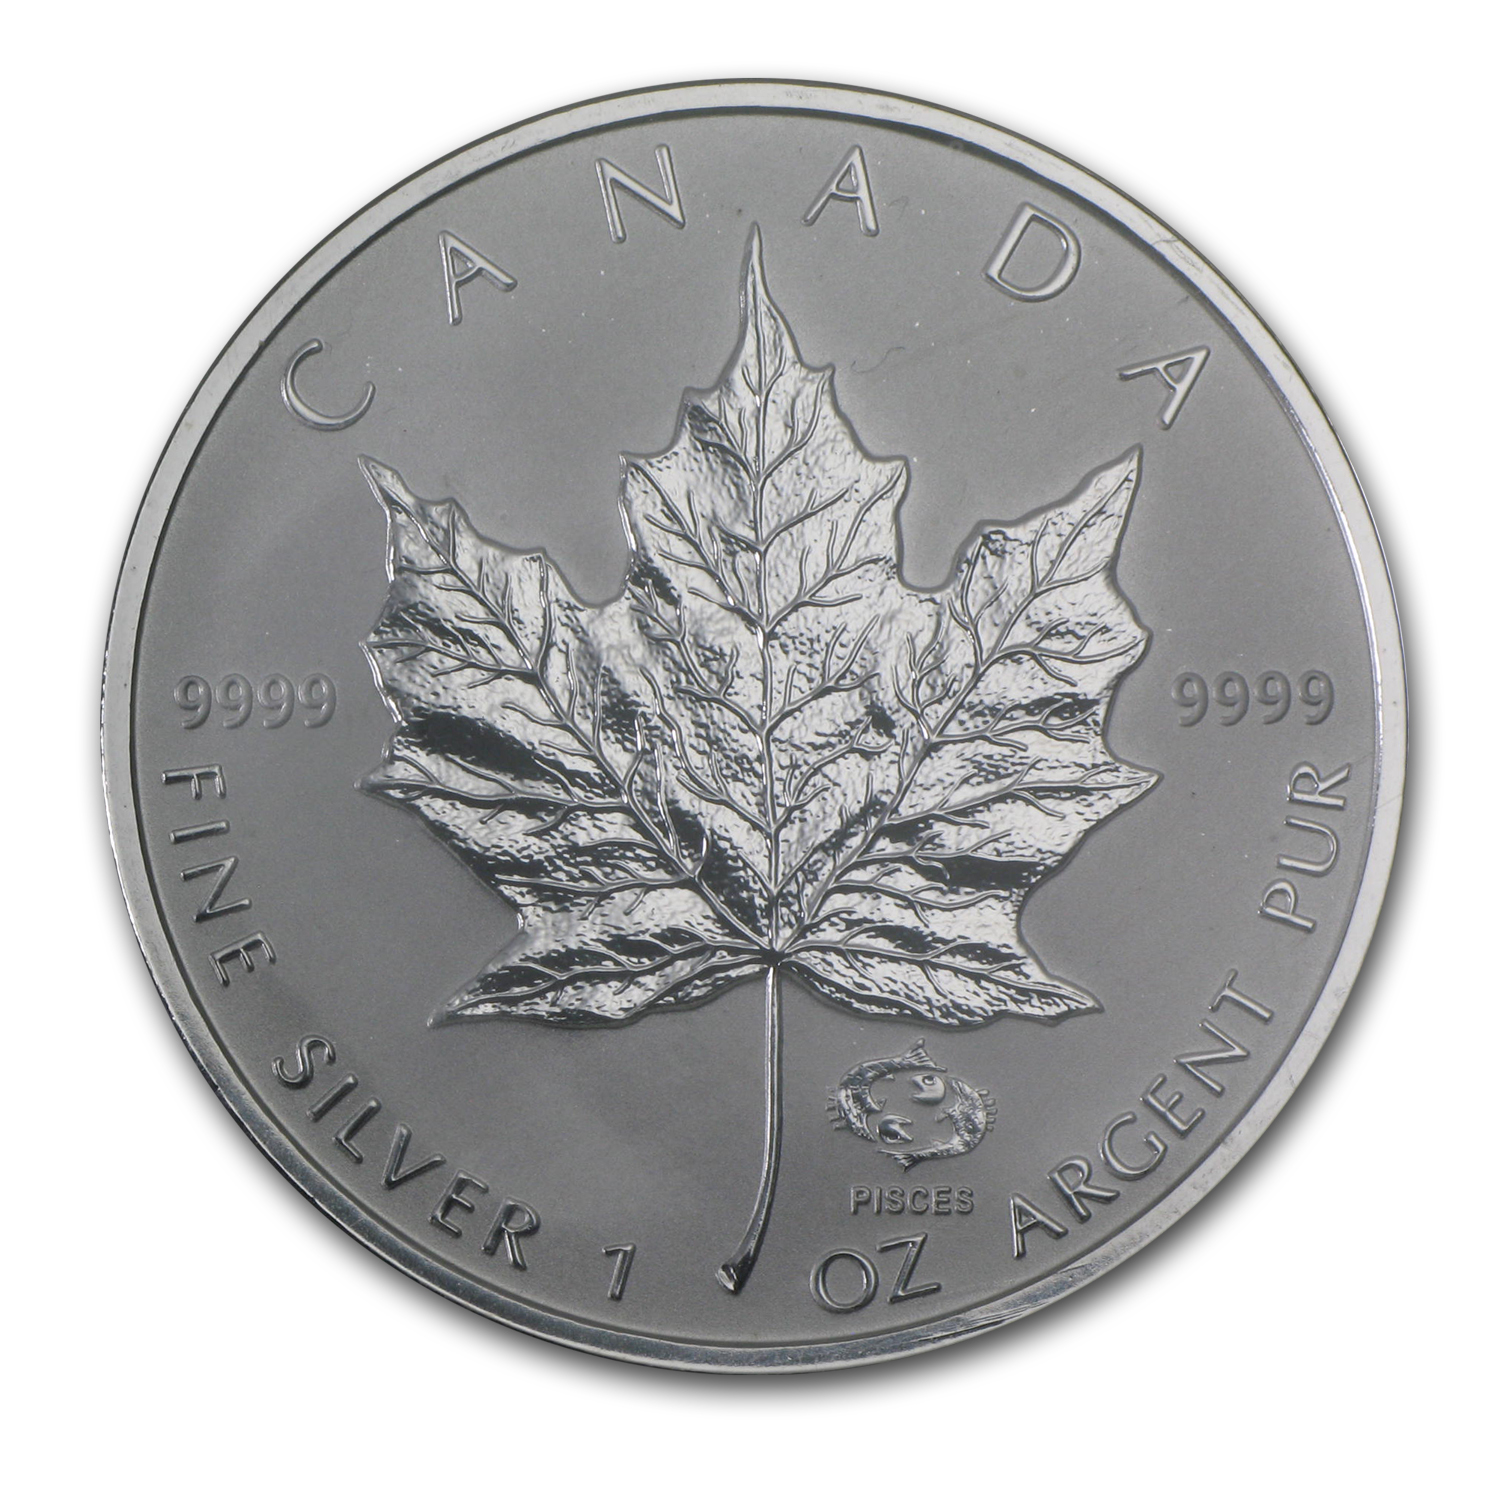 2004 1 oz Silver Canadian Maple Leaf - Pisces Zodiac Privy